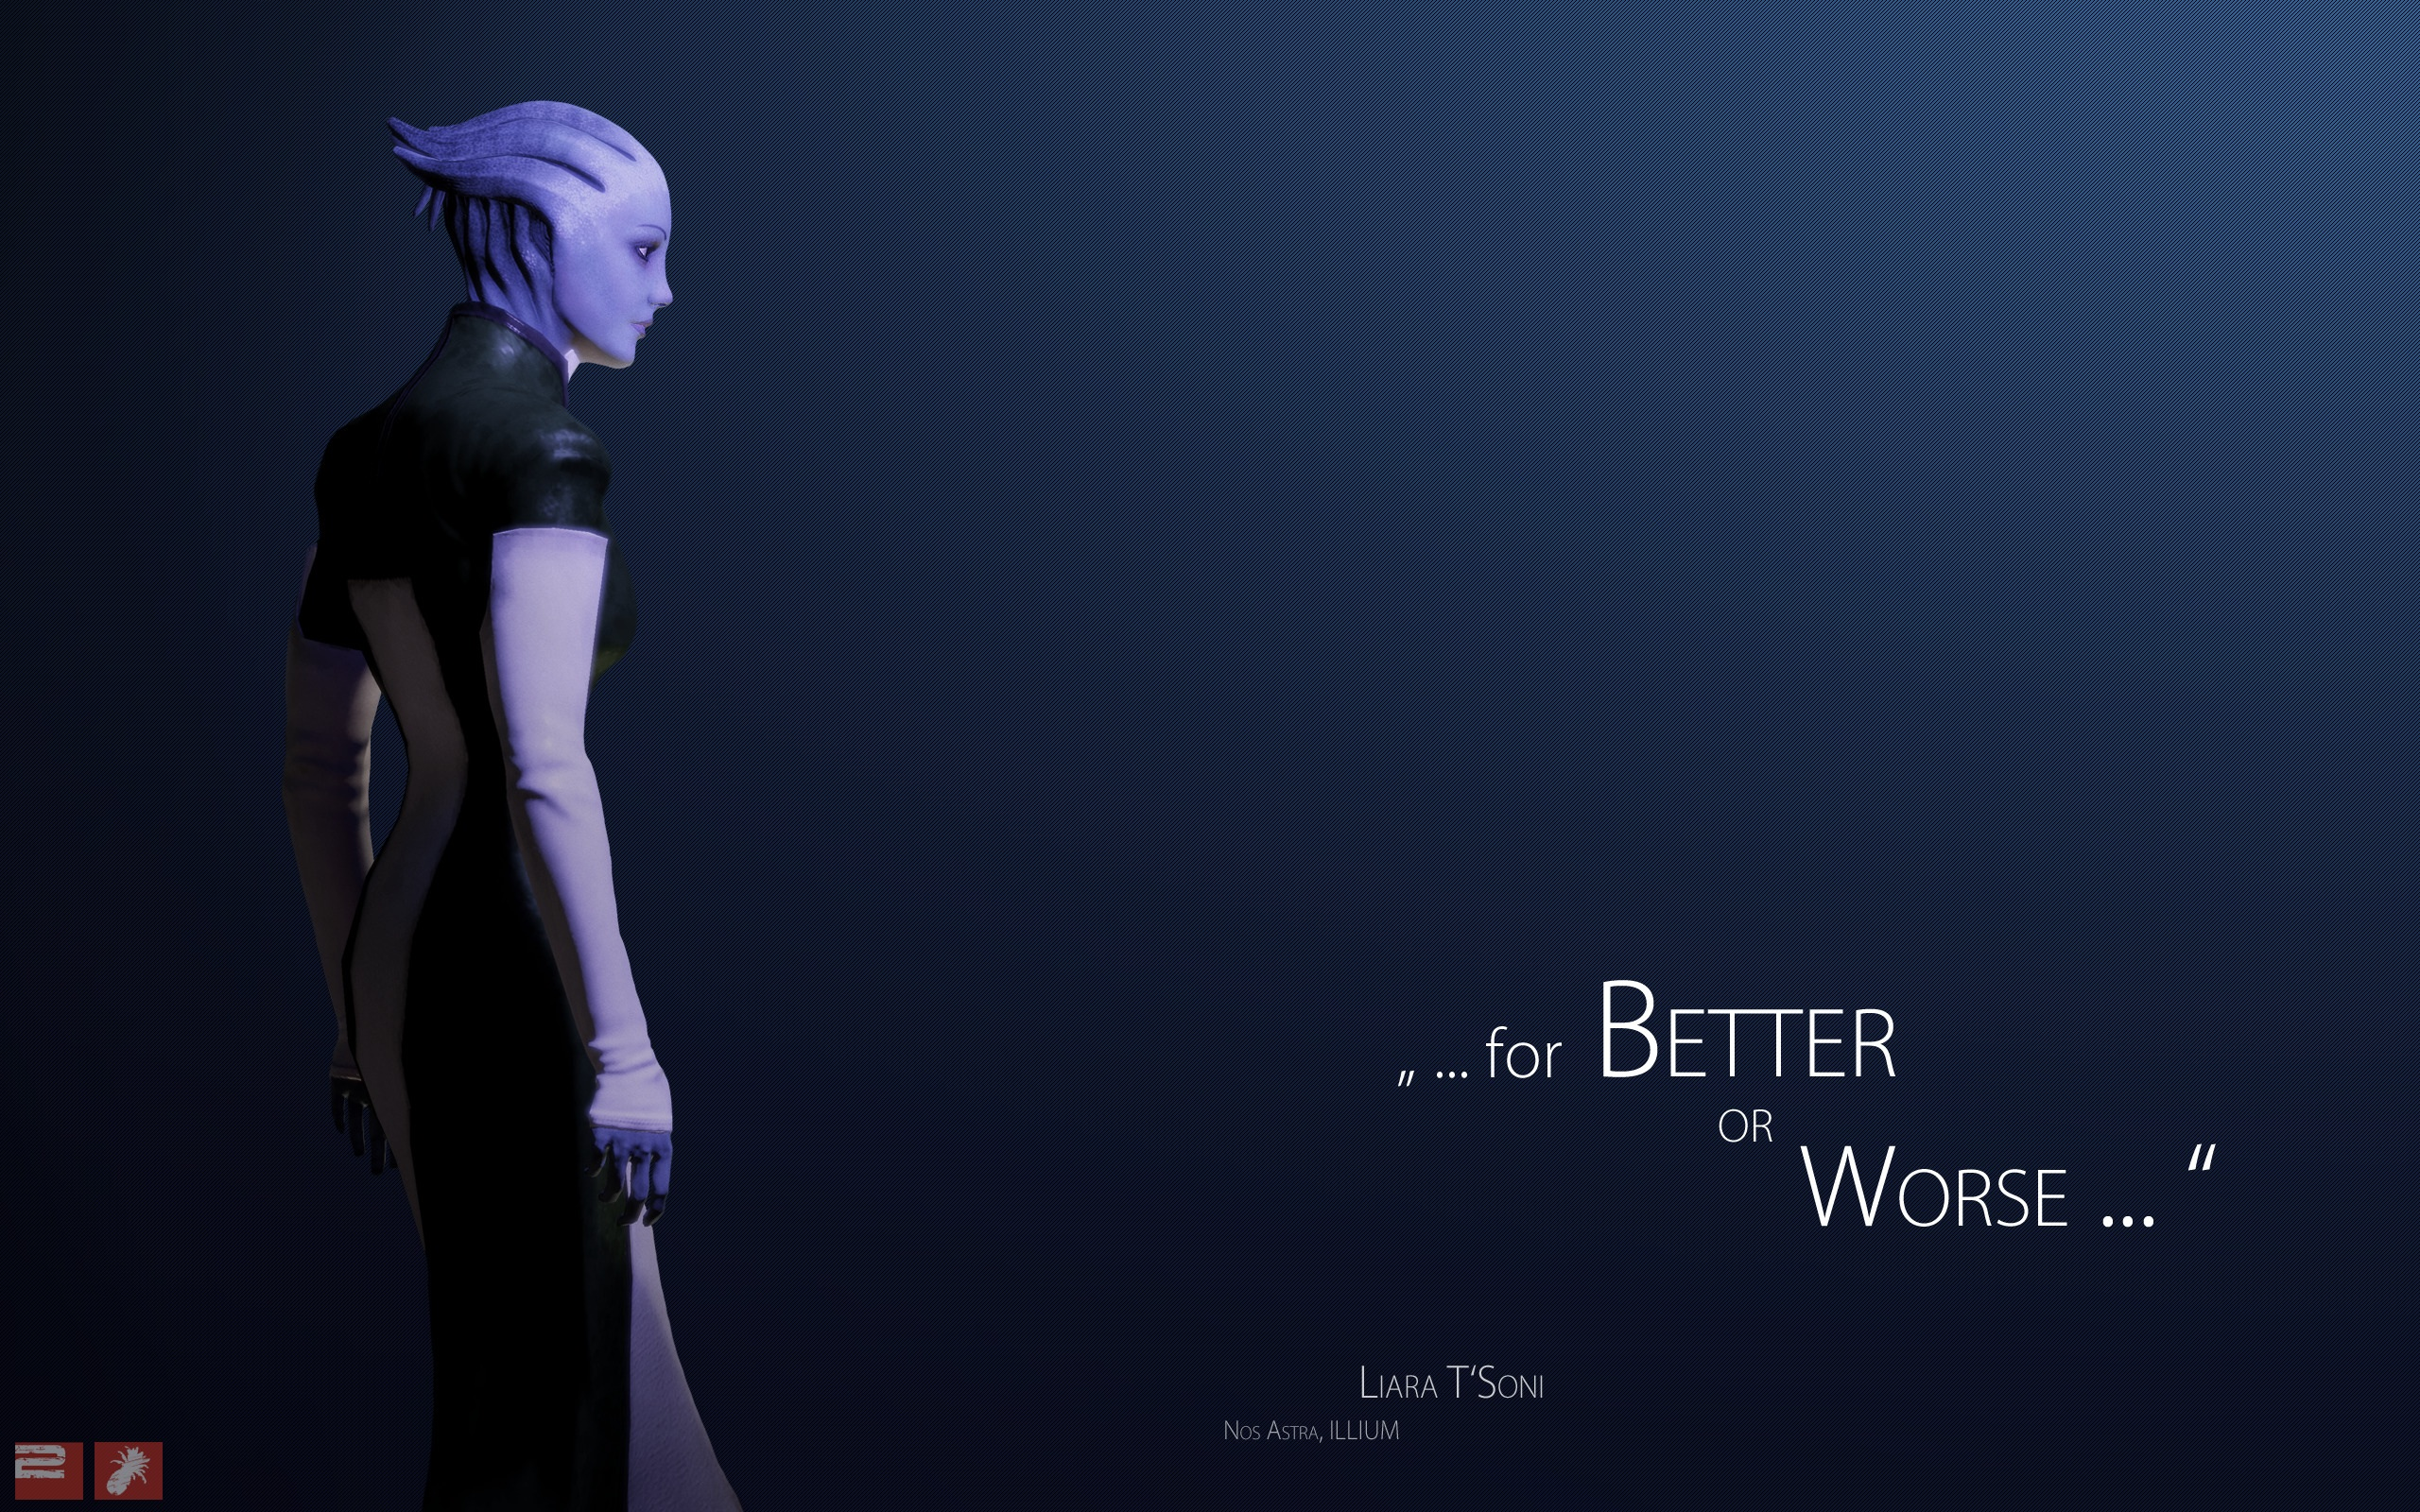 Mass Effect Rp Images Dr Liara Tsoni Hd Wallpaper And Background